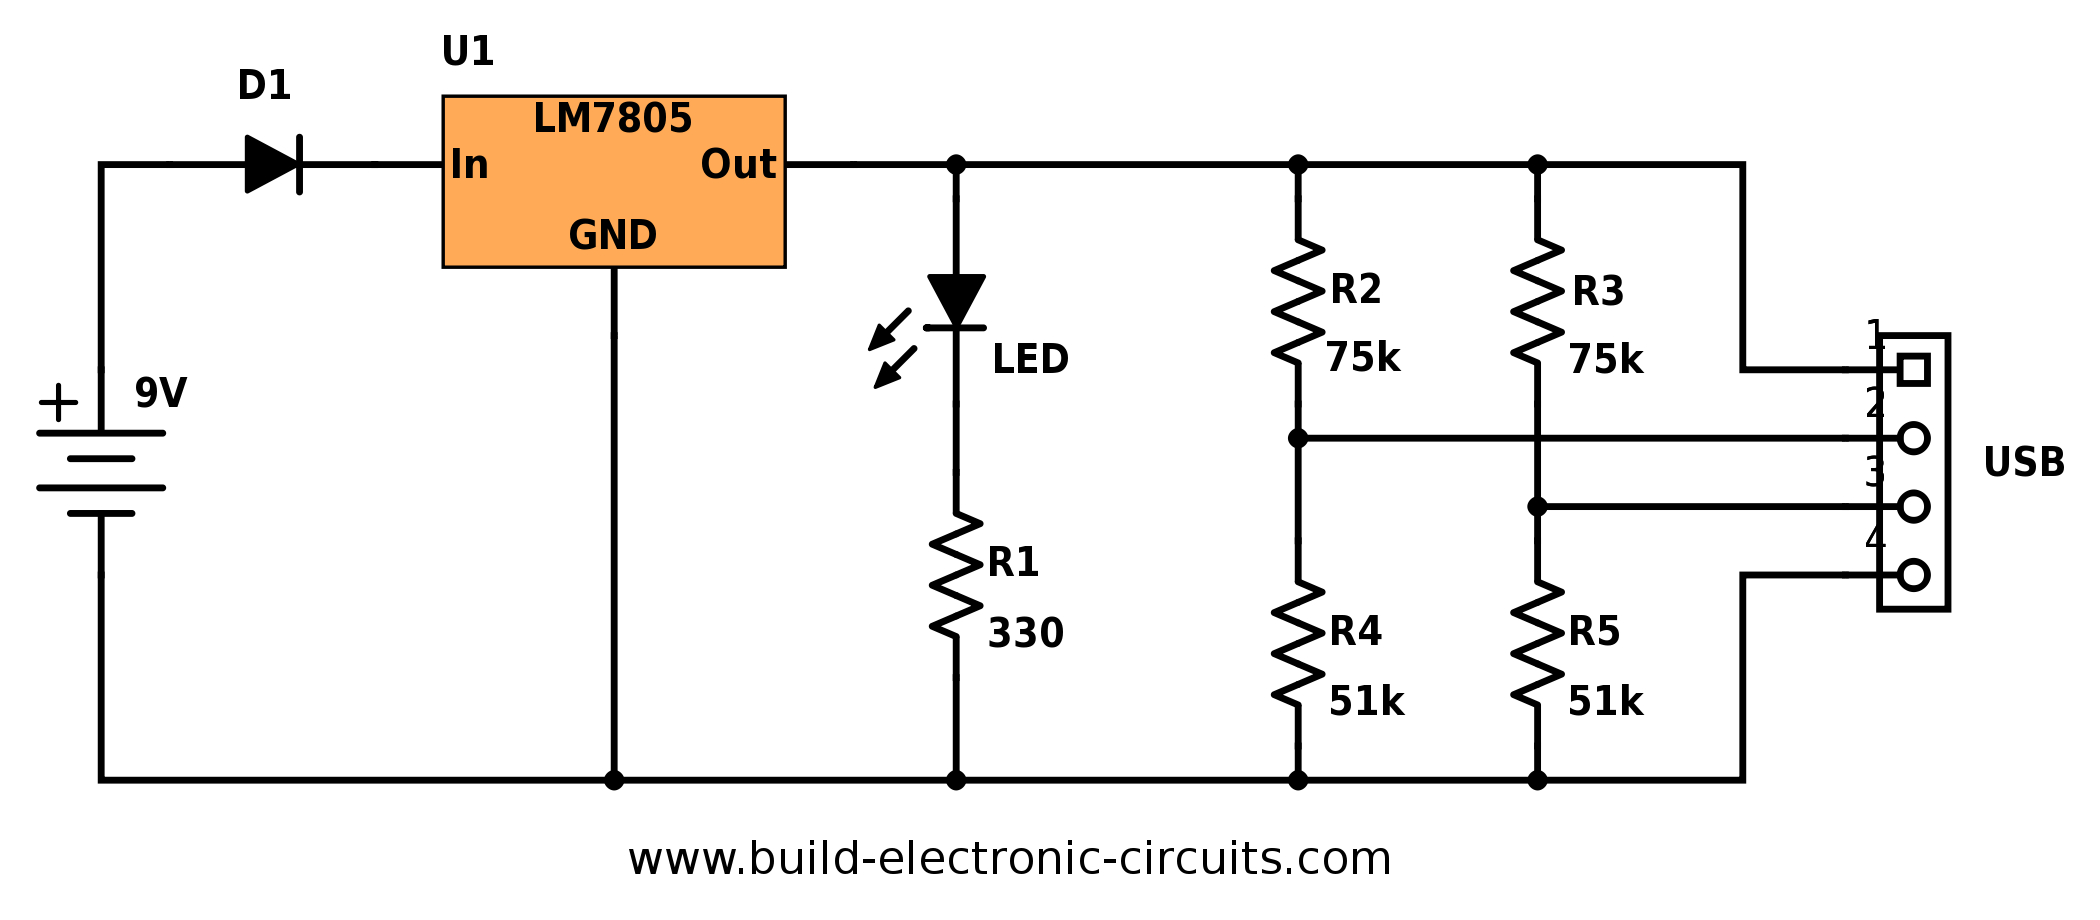 Portable Usb Charger Circuit - Build Electronic Circuits - Wiring Diagram Usb Player